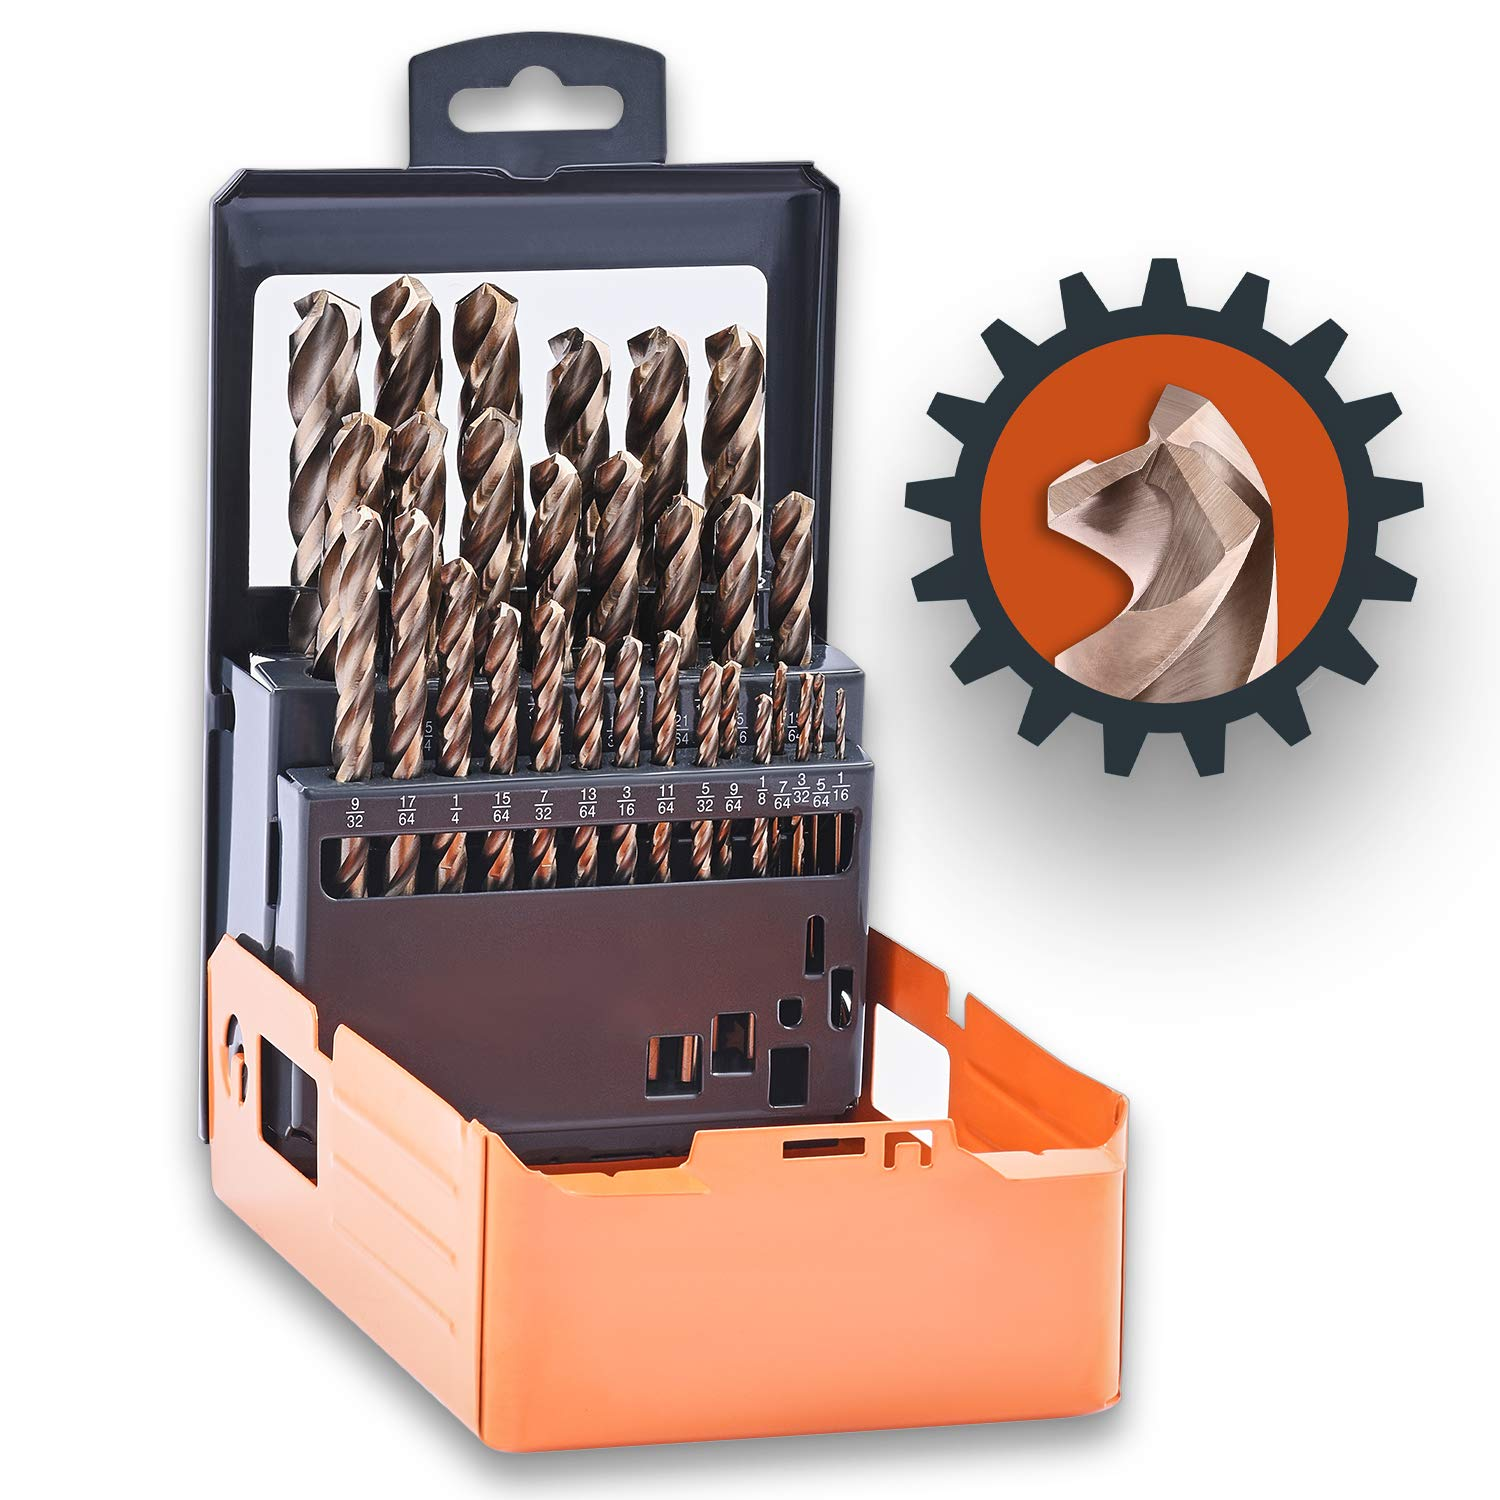 Lichamp 29PCS Free shipping anywhere in the nation HSS Cobalt Drill Limited price sale Bits Set 1 2